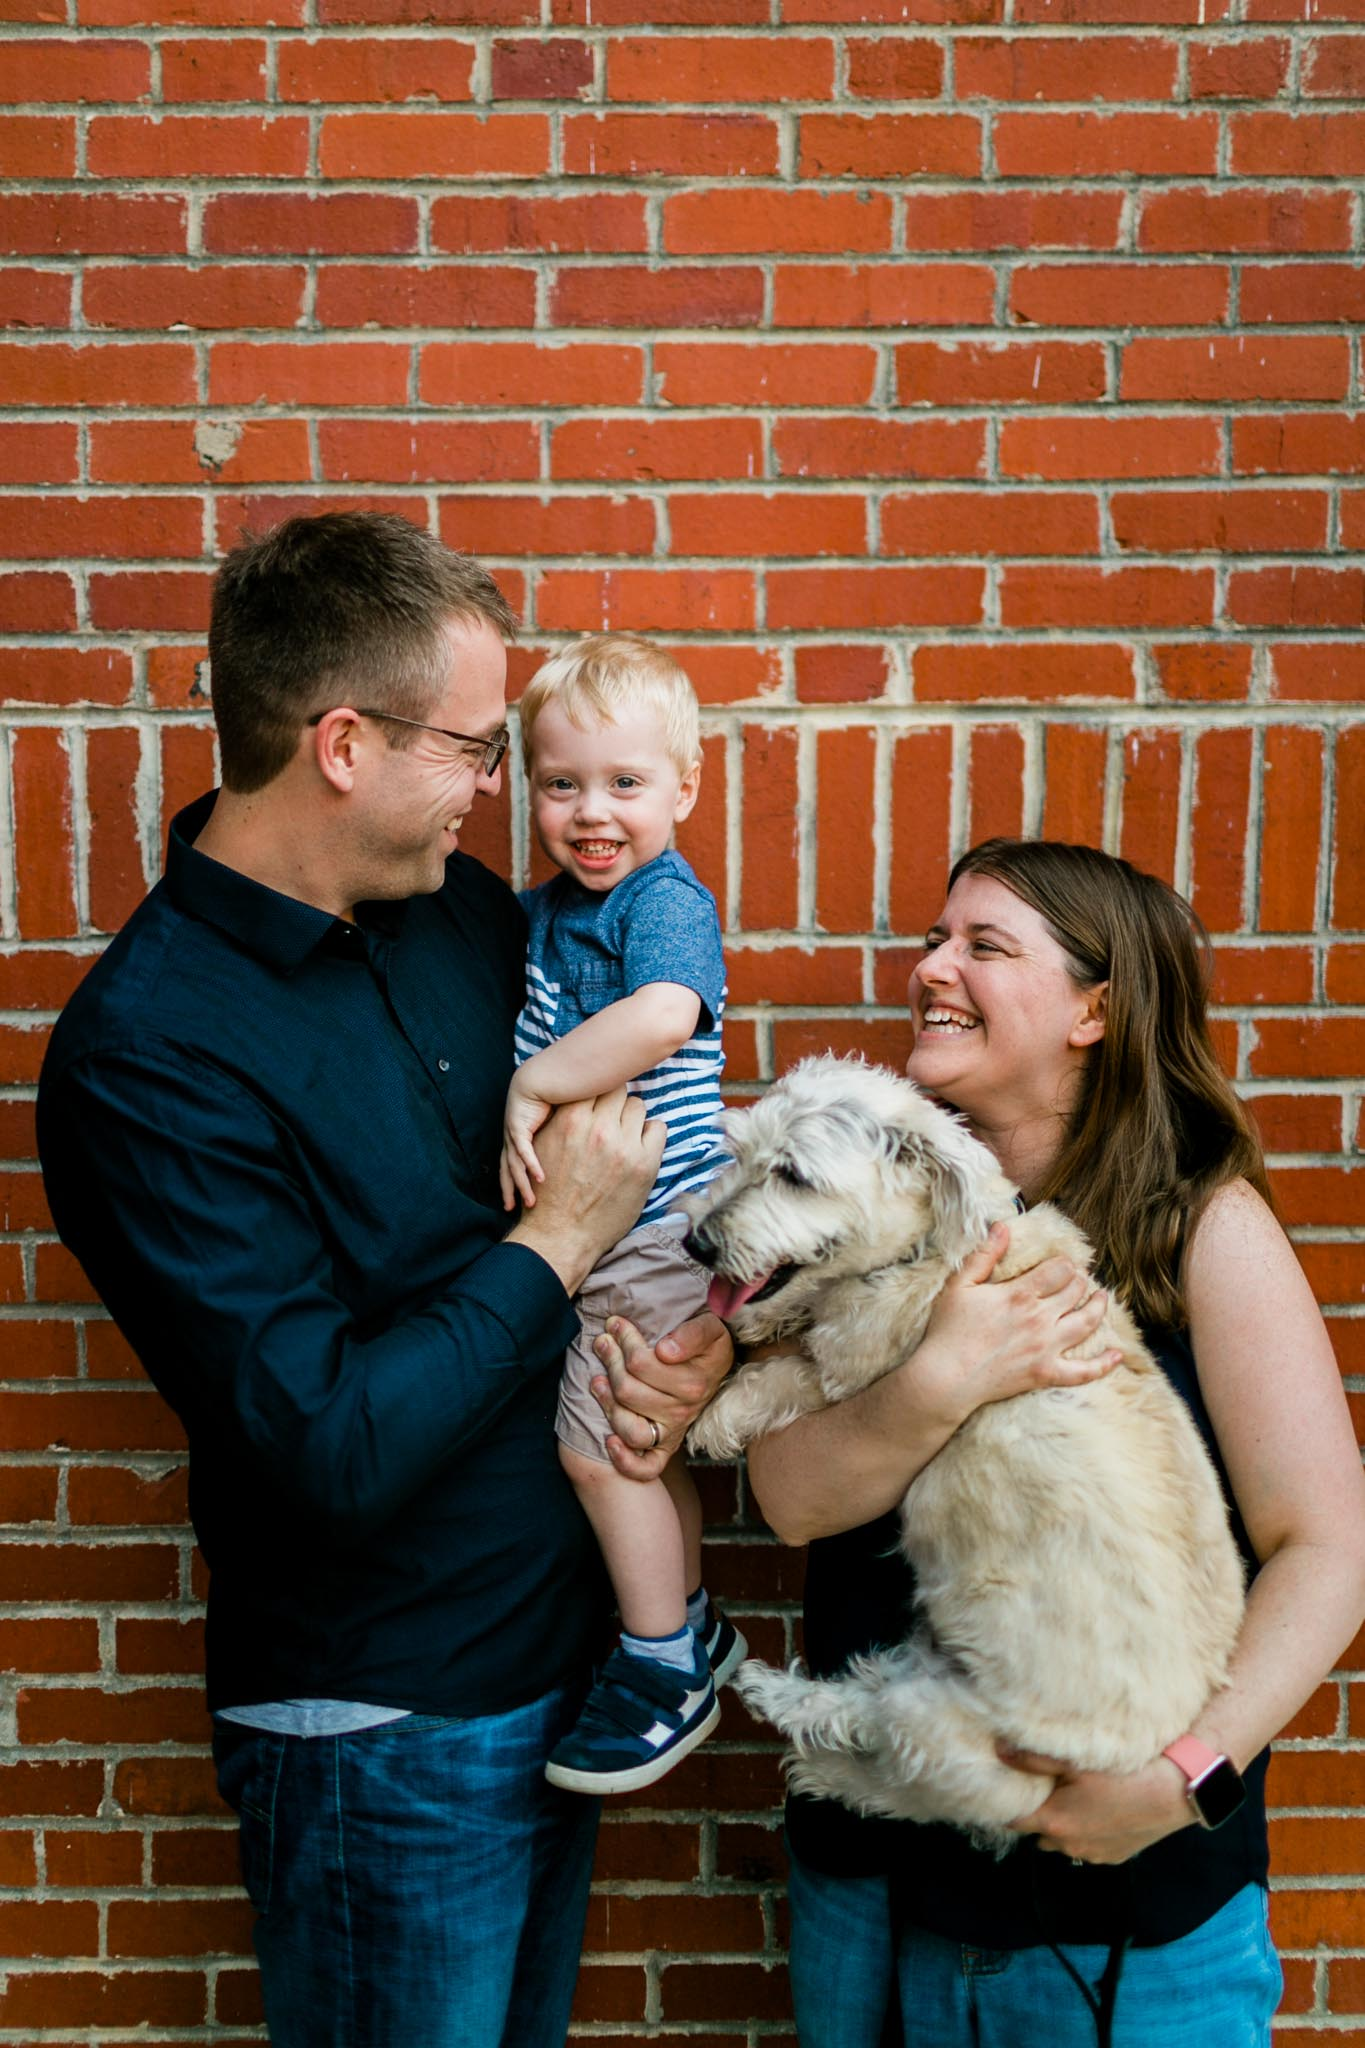 Durham Family Photographer | By G. Lin Photography | Family laughing together at Tobacco Campus